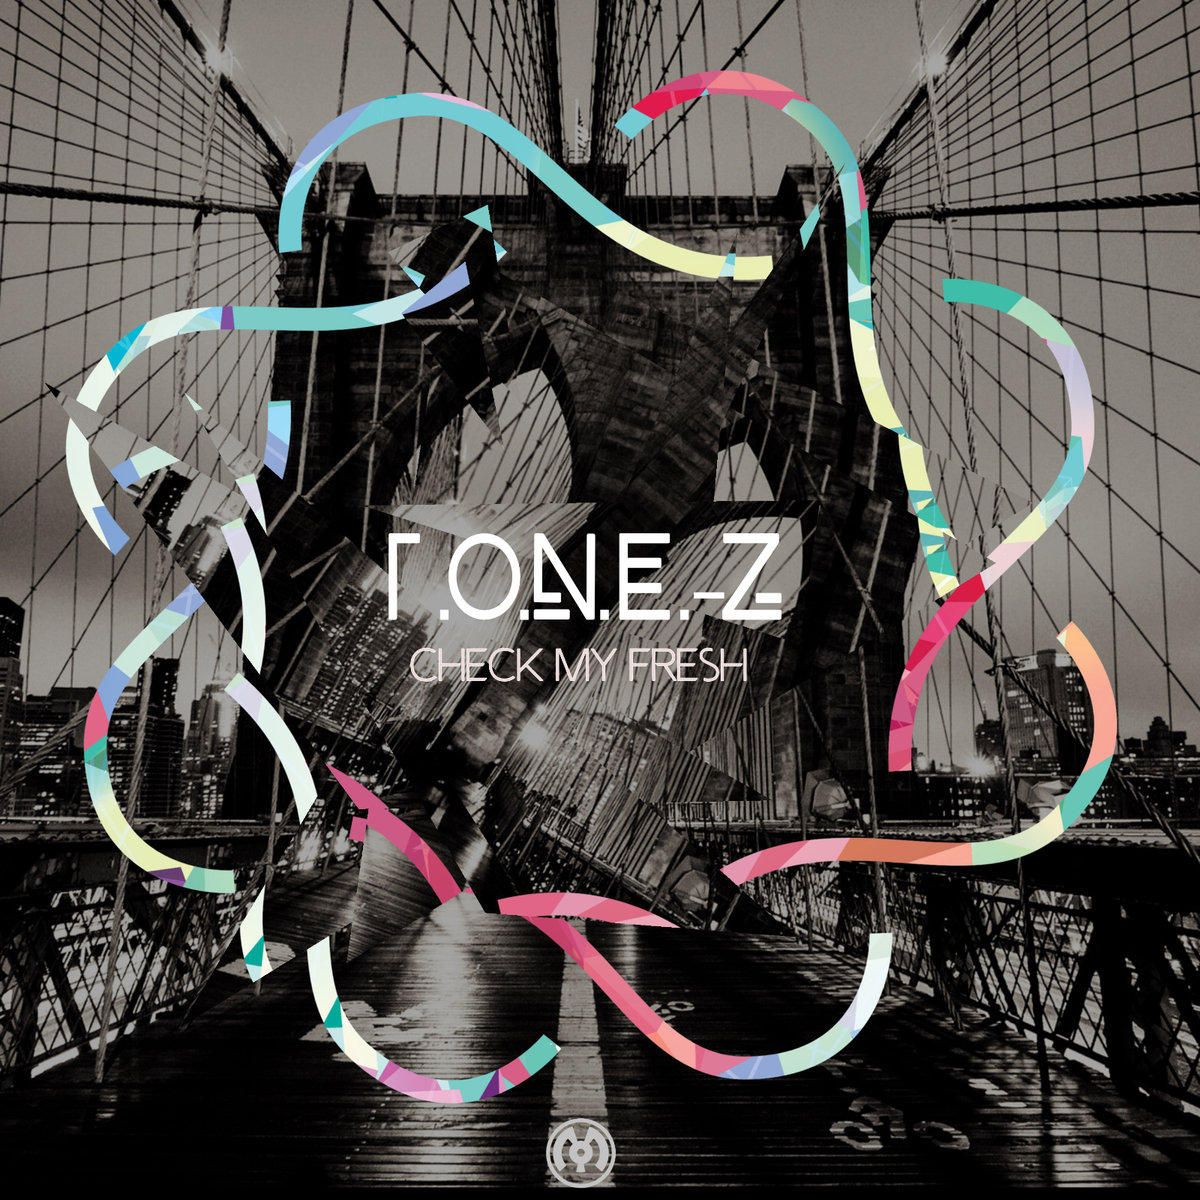 T.O.N.E.-z feat. Brad Walsh - Check My Fresh @ 'Check My Fresh' album (electronic, dubstep)